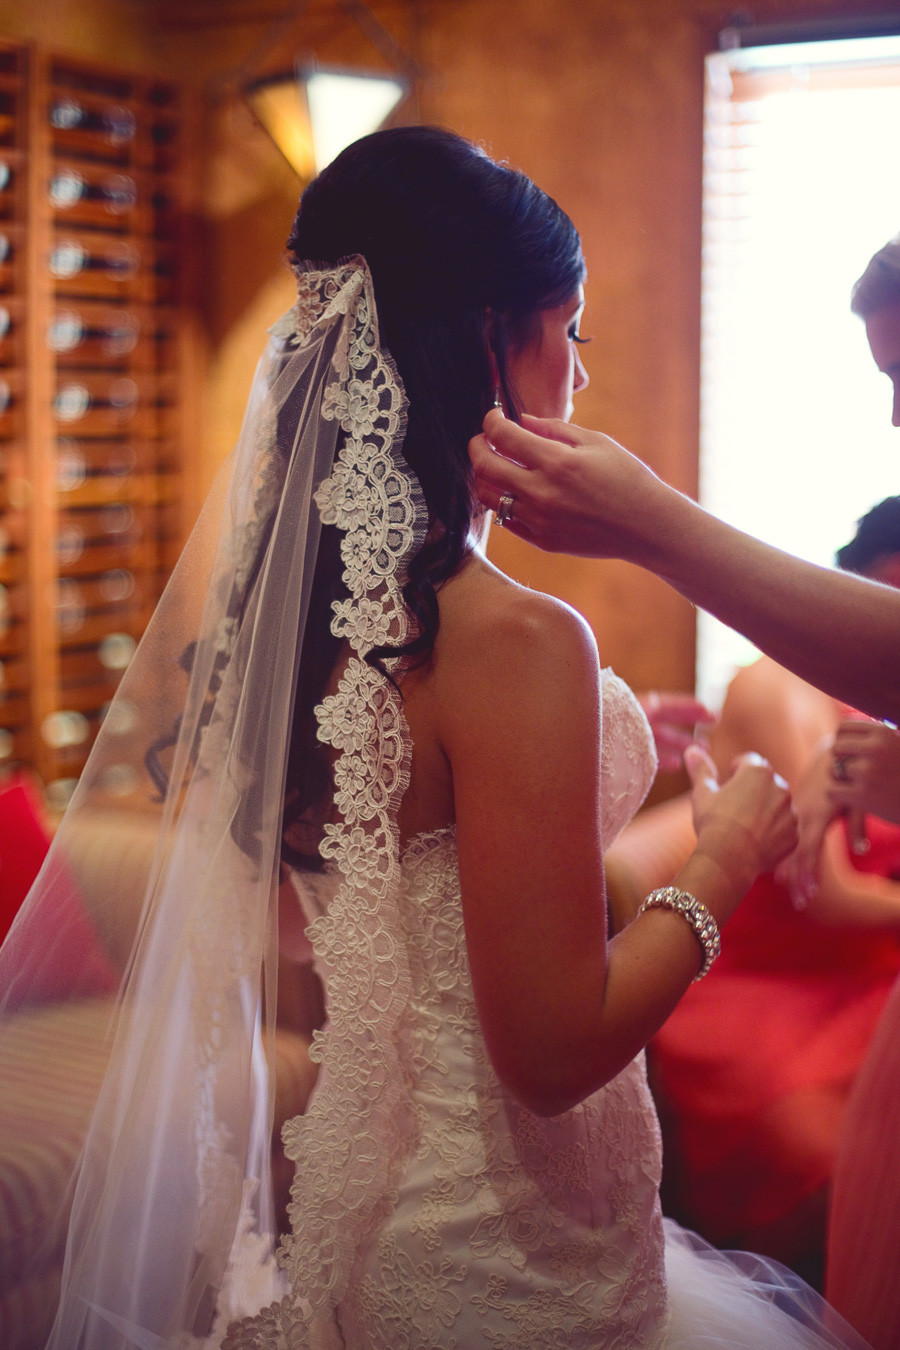 A bride on her wedding day wearing a lace veil getting ready to walk down the aisle.